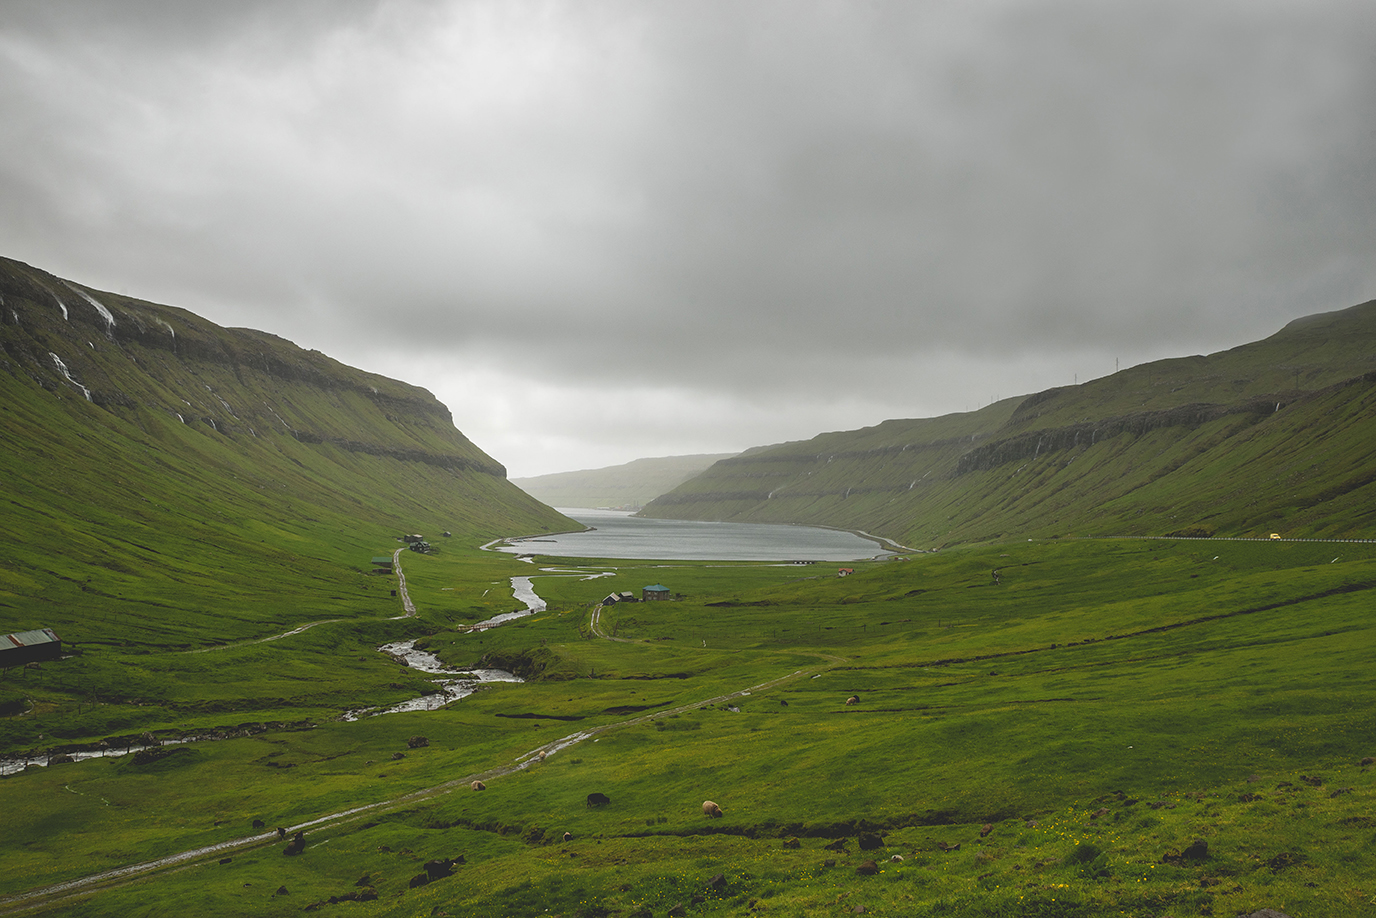 FaroeIslands_Day2_23-6-17_TAL-14.jpg